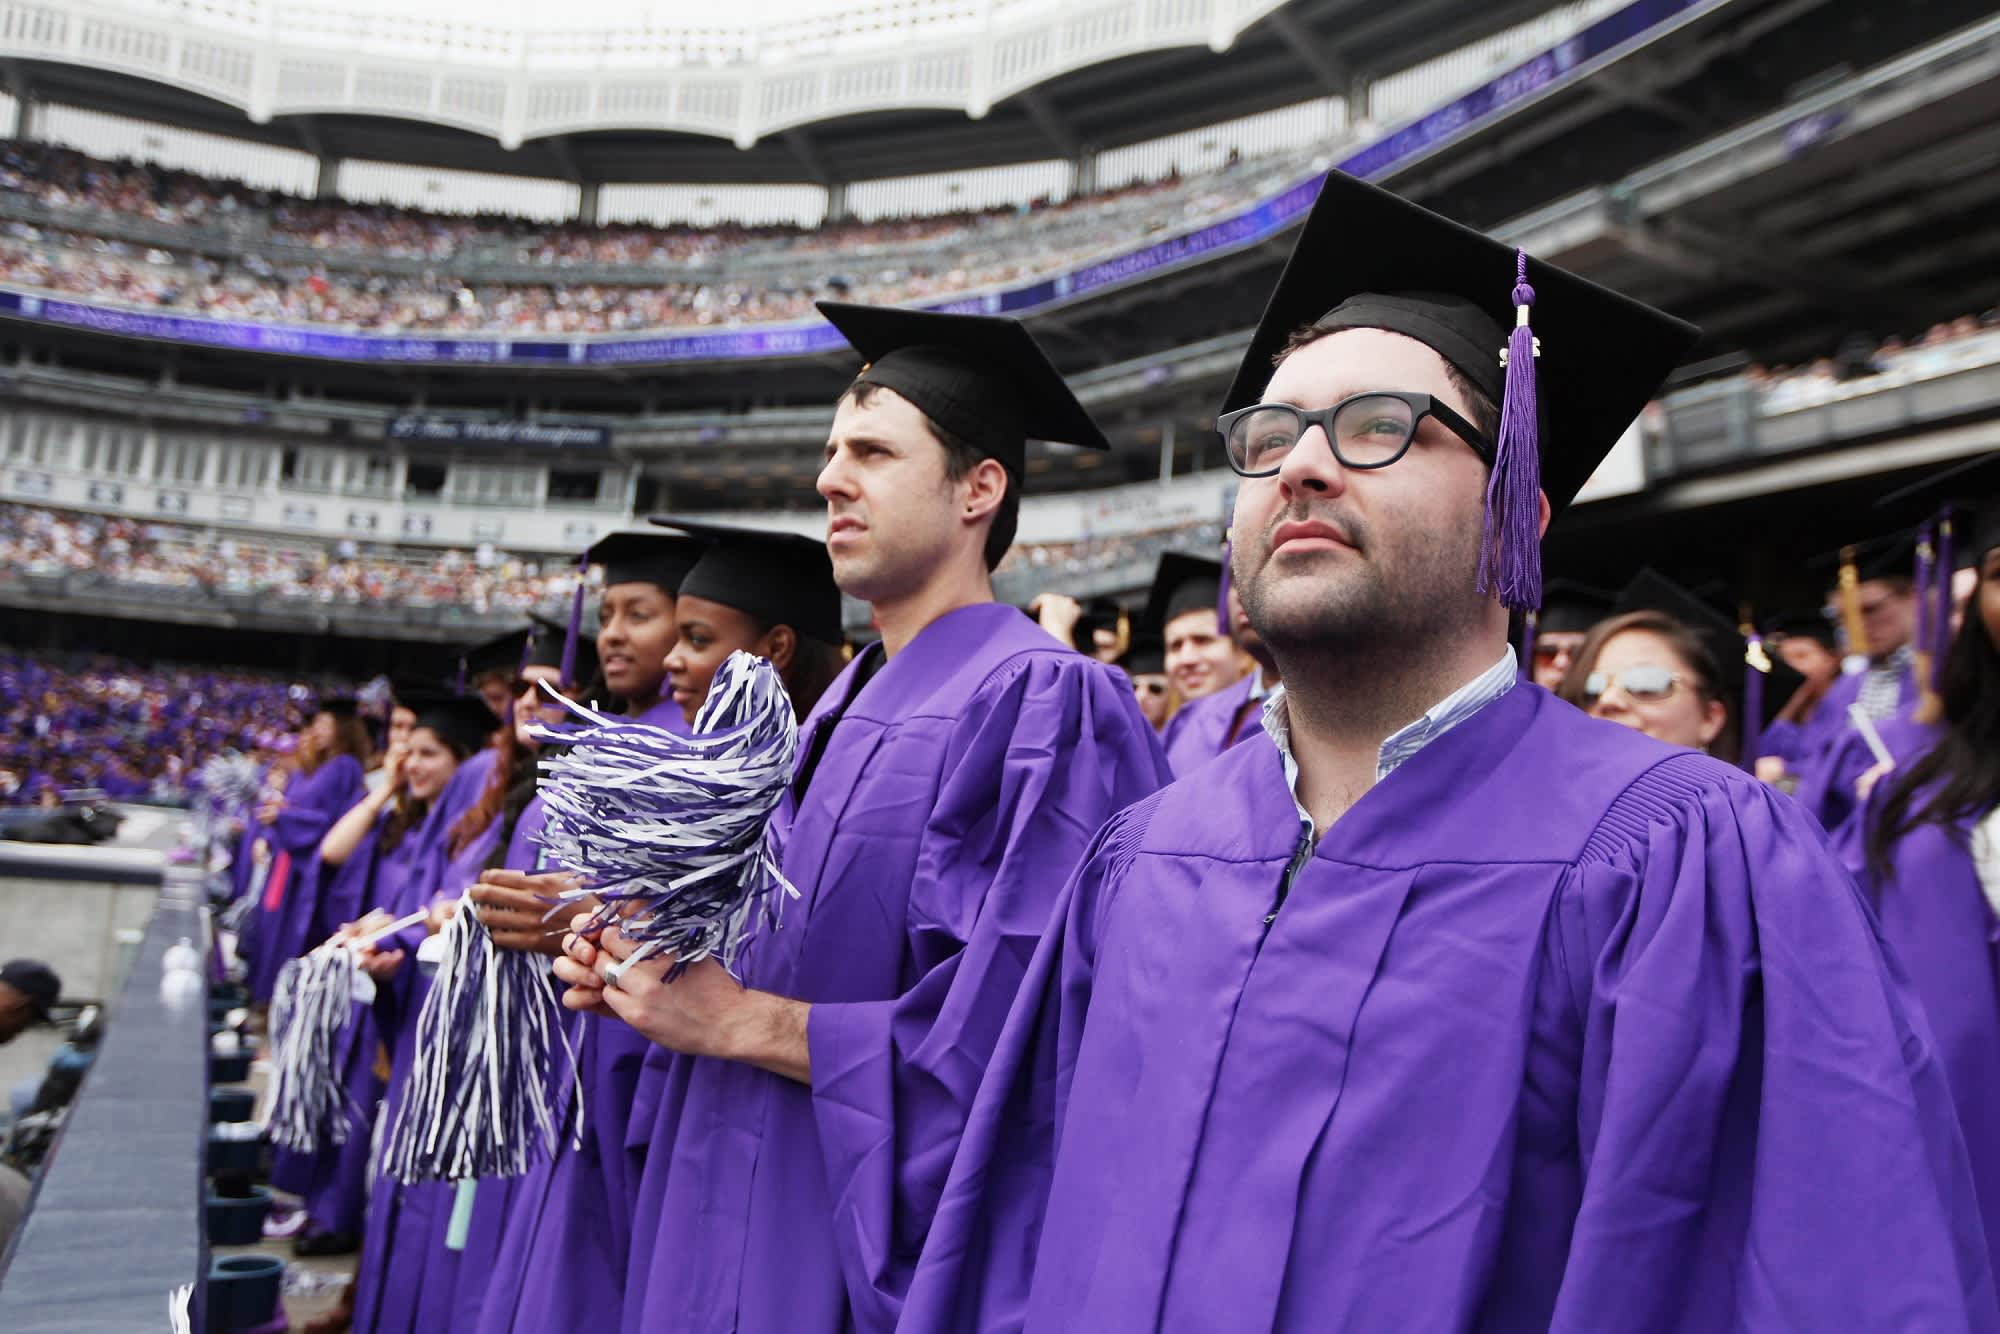 51% of young Americans support tuition-free public college